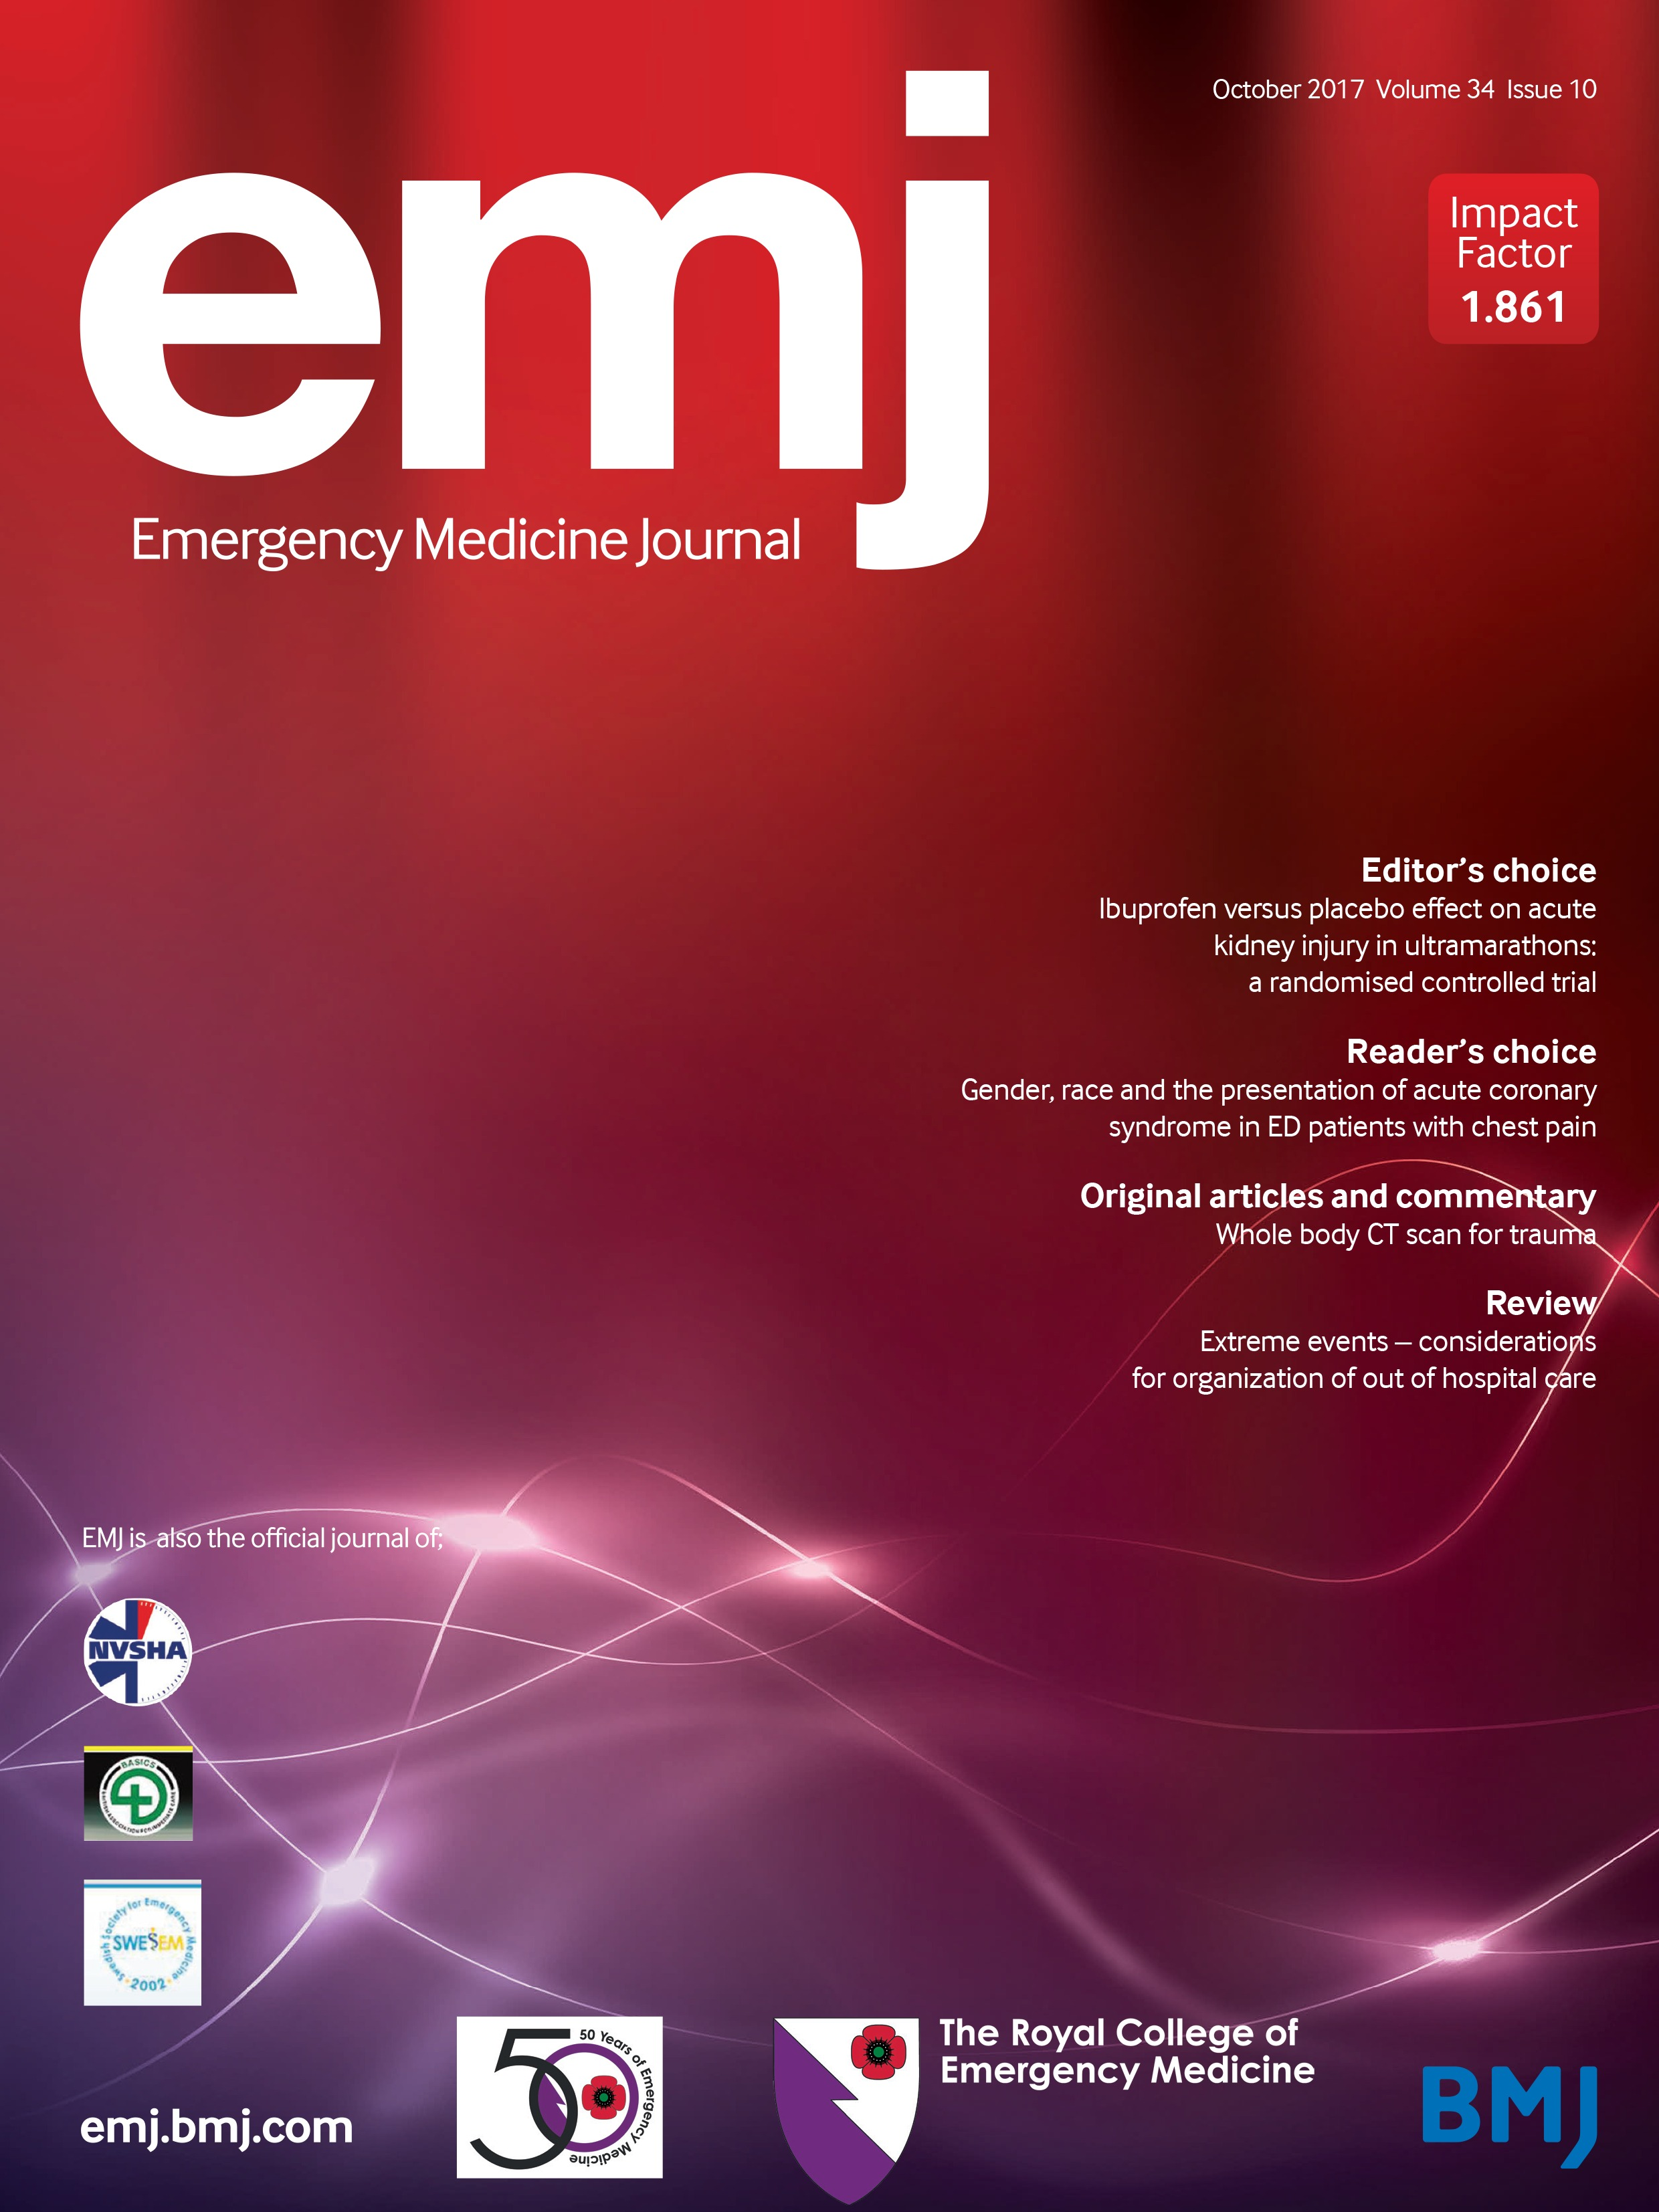 Gender, race and the presentation of acute coronary syndrome and ...